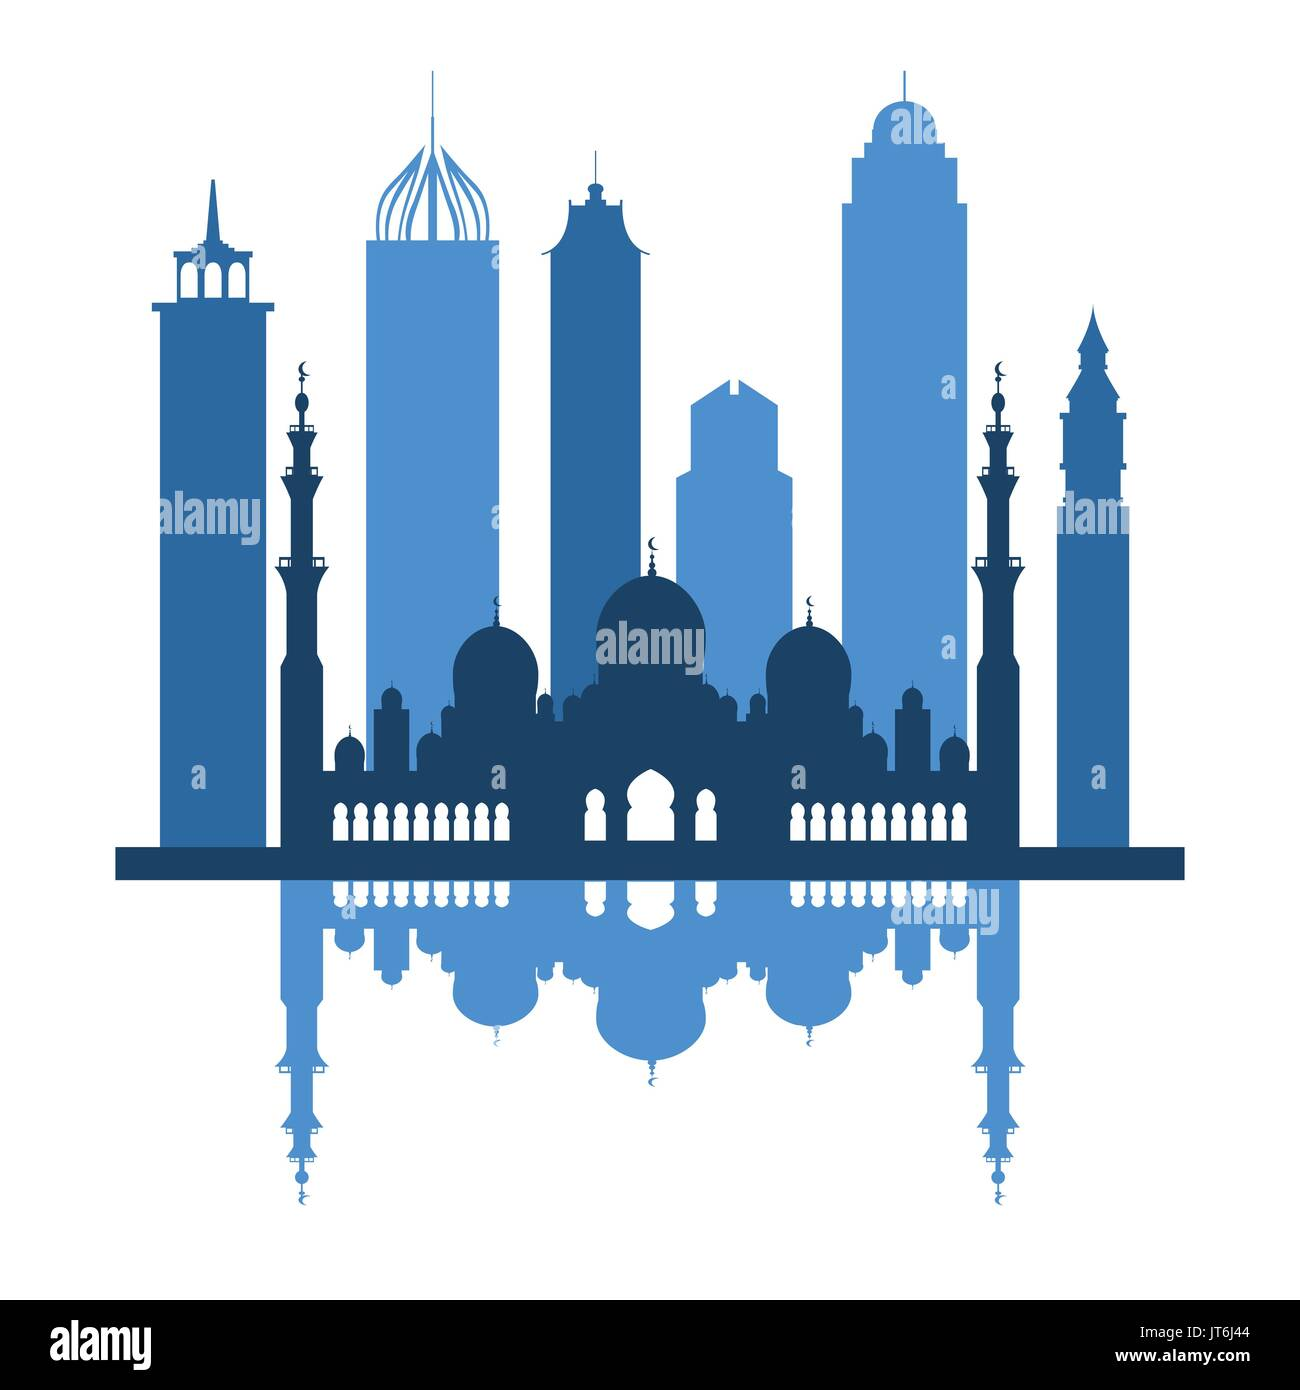 Vector illustration of United Arab Emirates skyscrapers silhouette. Dubai and Abu dhabi buildings. Design for banner, poster or print. - Stock Image